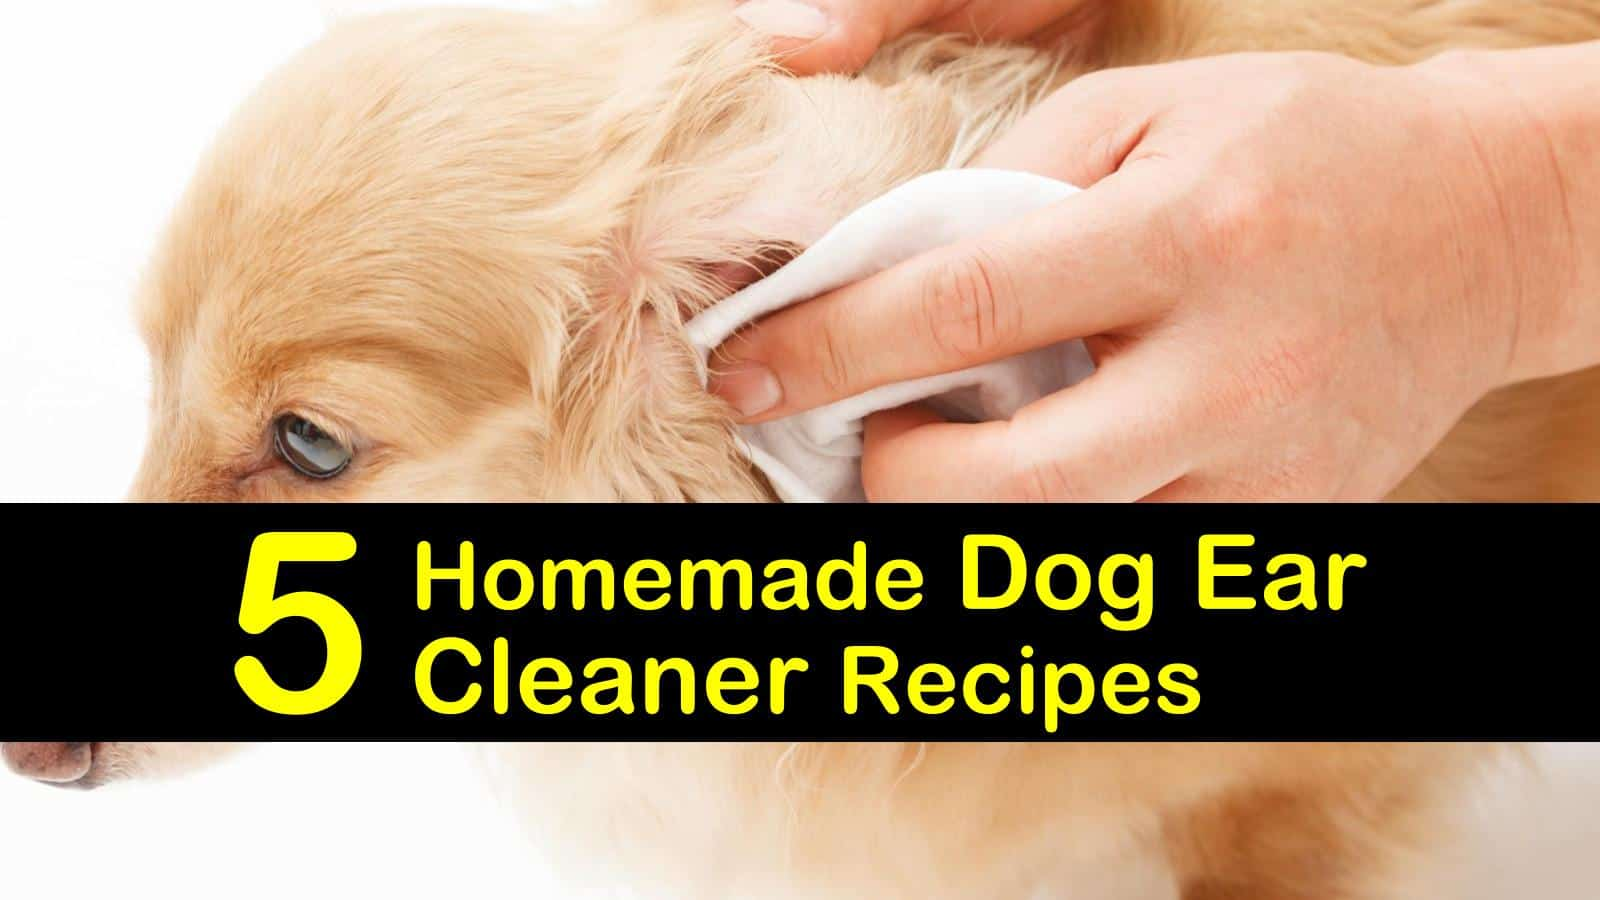 5 Homemade Dog Ear Cleaner Recipes